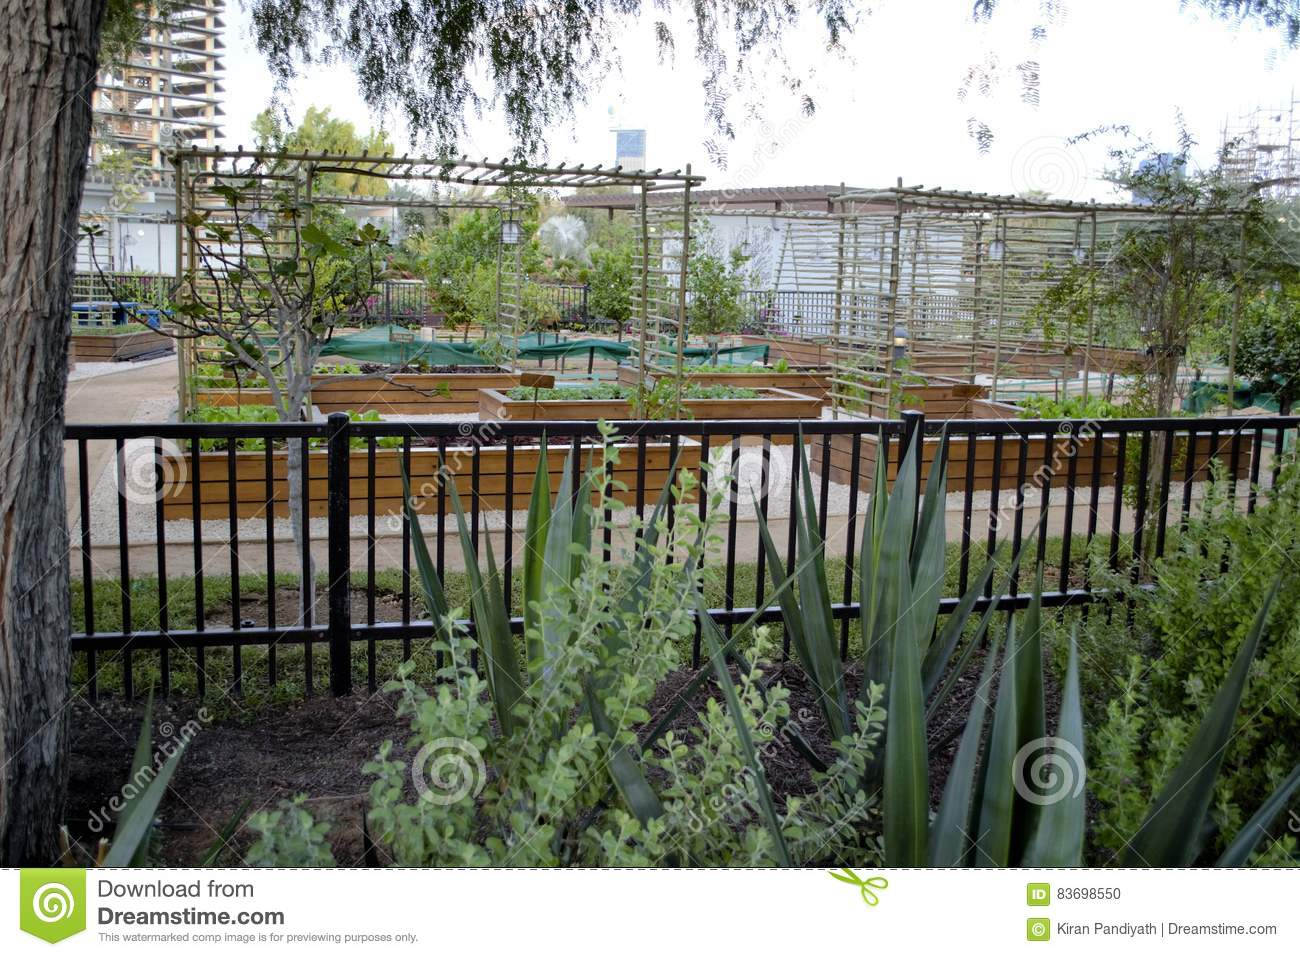 Download Bamboo Trellis Black Garden Fence Stock Photo   Image Of Fence,  Trellis: 83698550